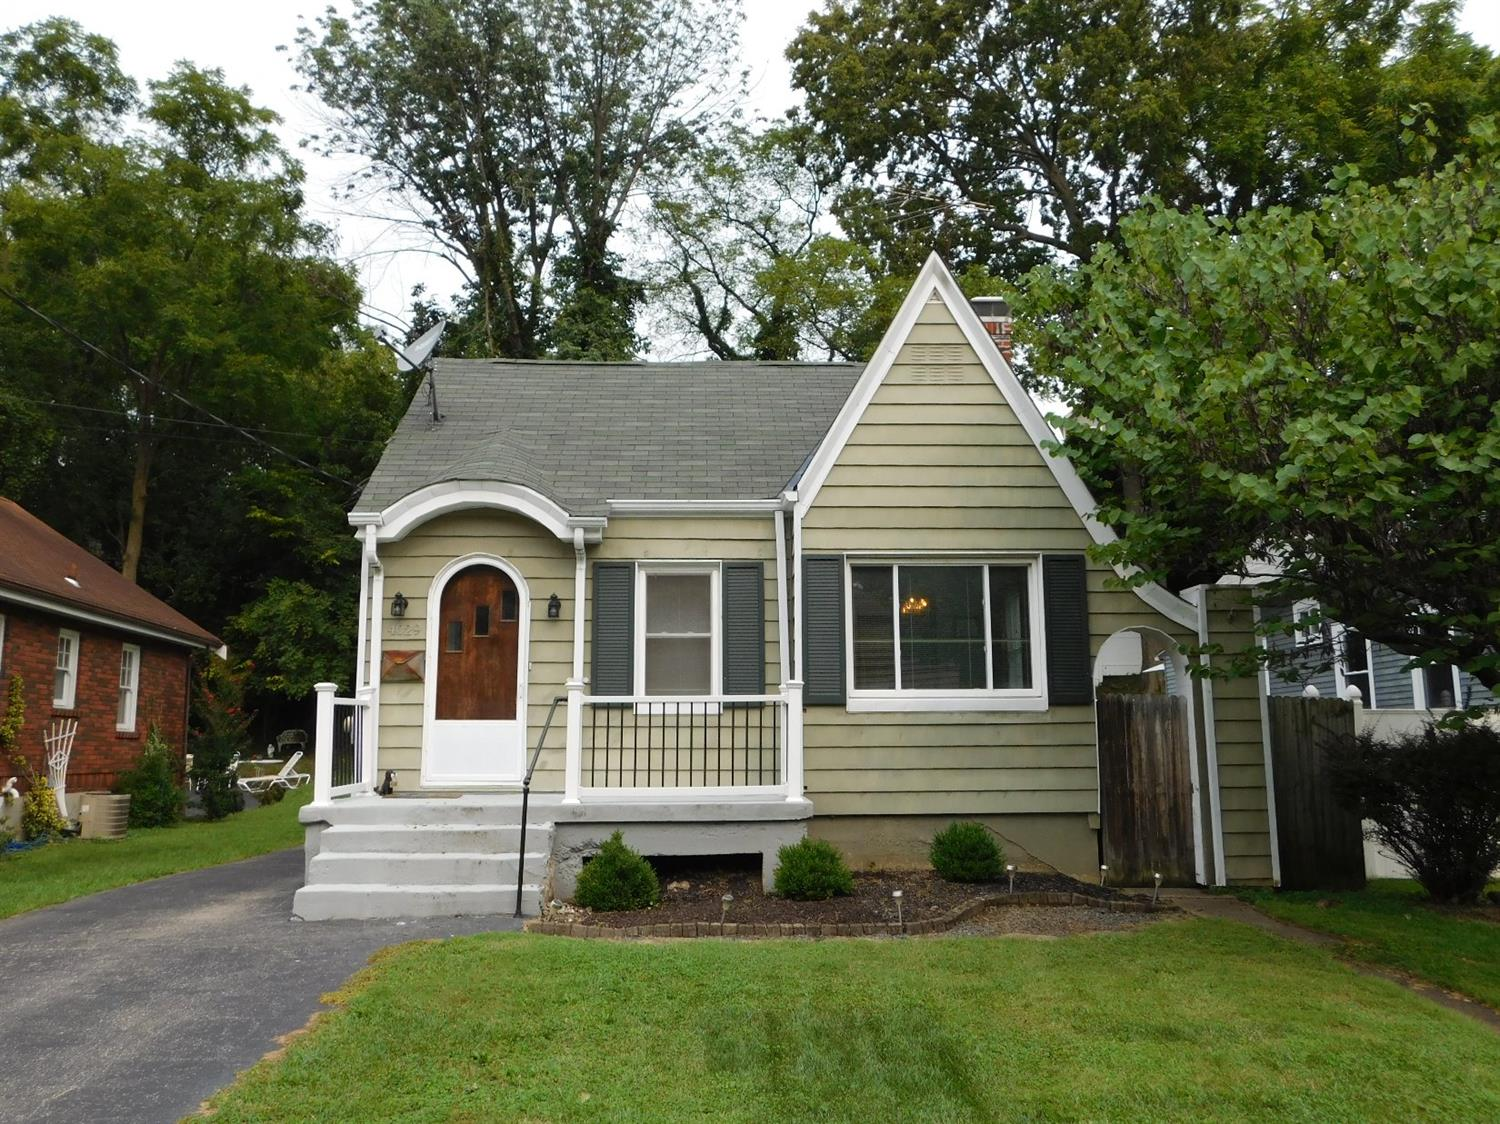 Property for sale at 4029 Paxton Avenue, Cincinnati,  OH 45209